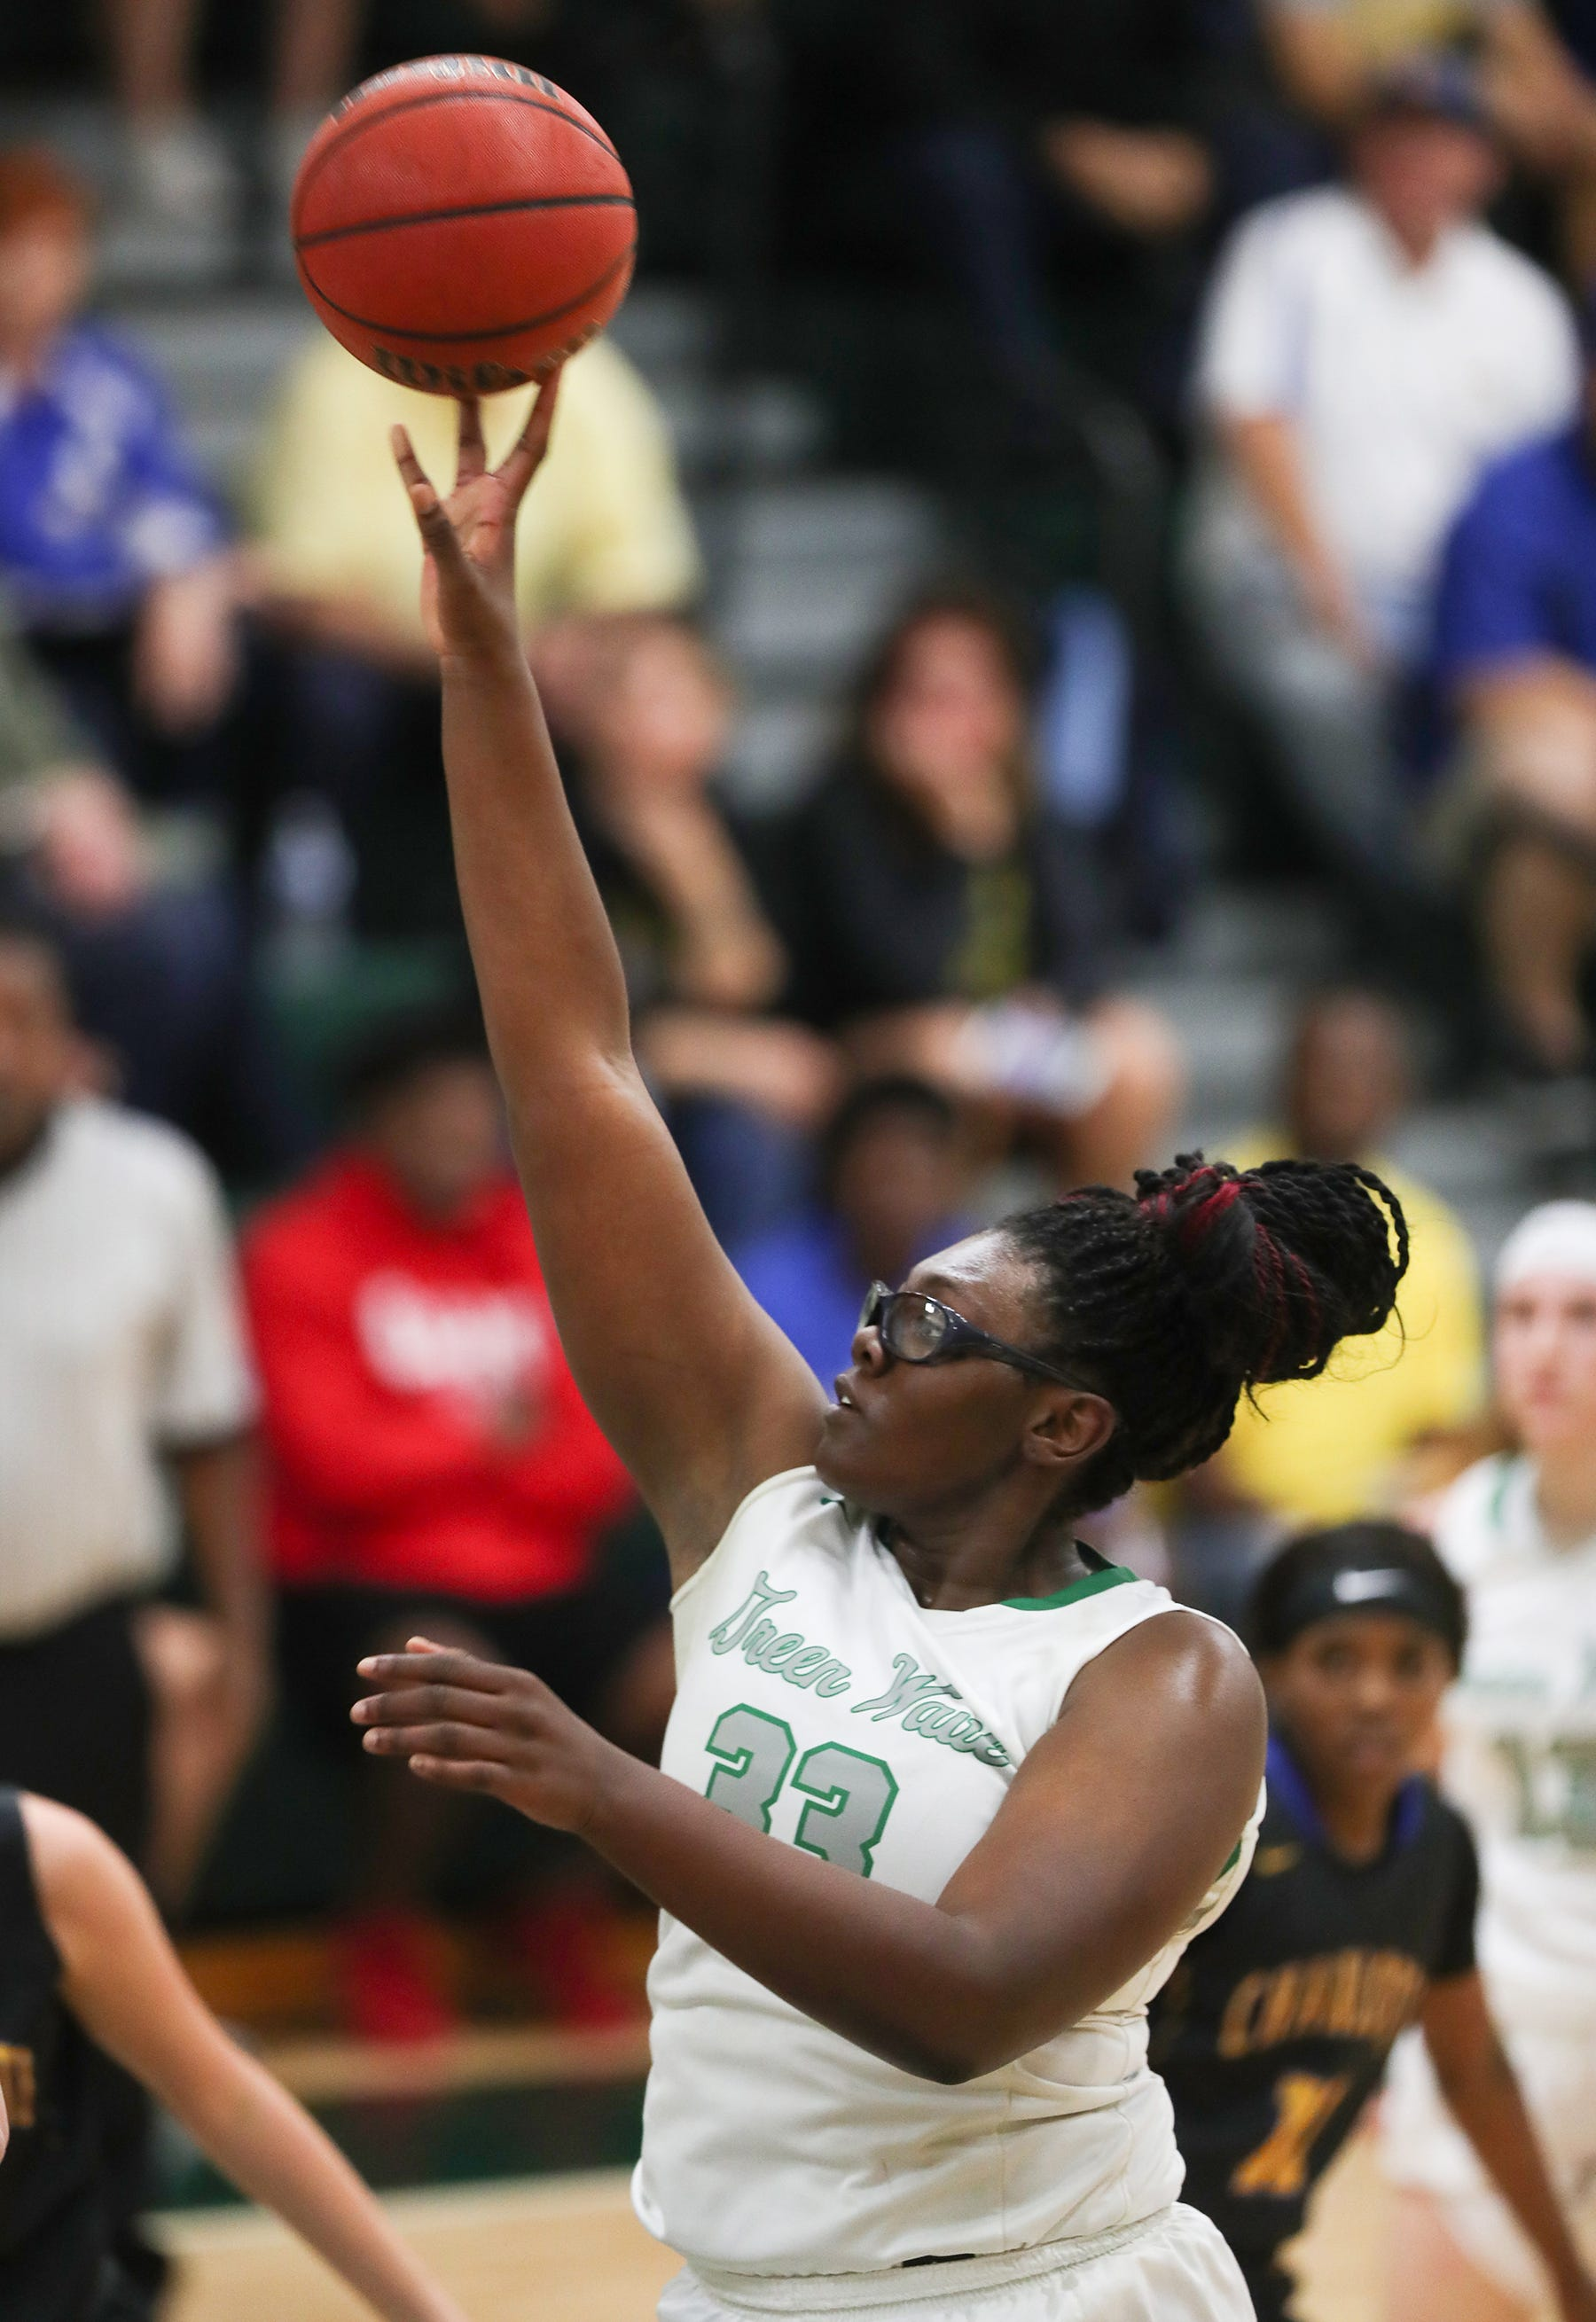 Fort Myers High School's Chaniya Clark scores against Charlotte on Friday in the Class 7A regional championship at Fort Myers. Fort Myers beat Charlotte 50-37.